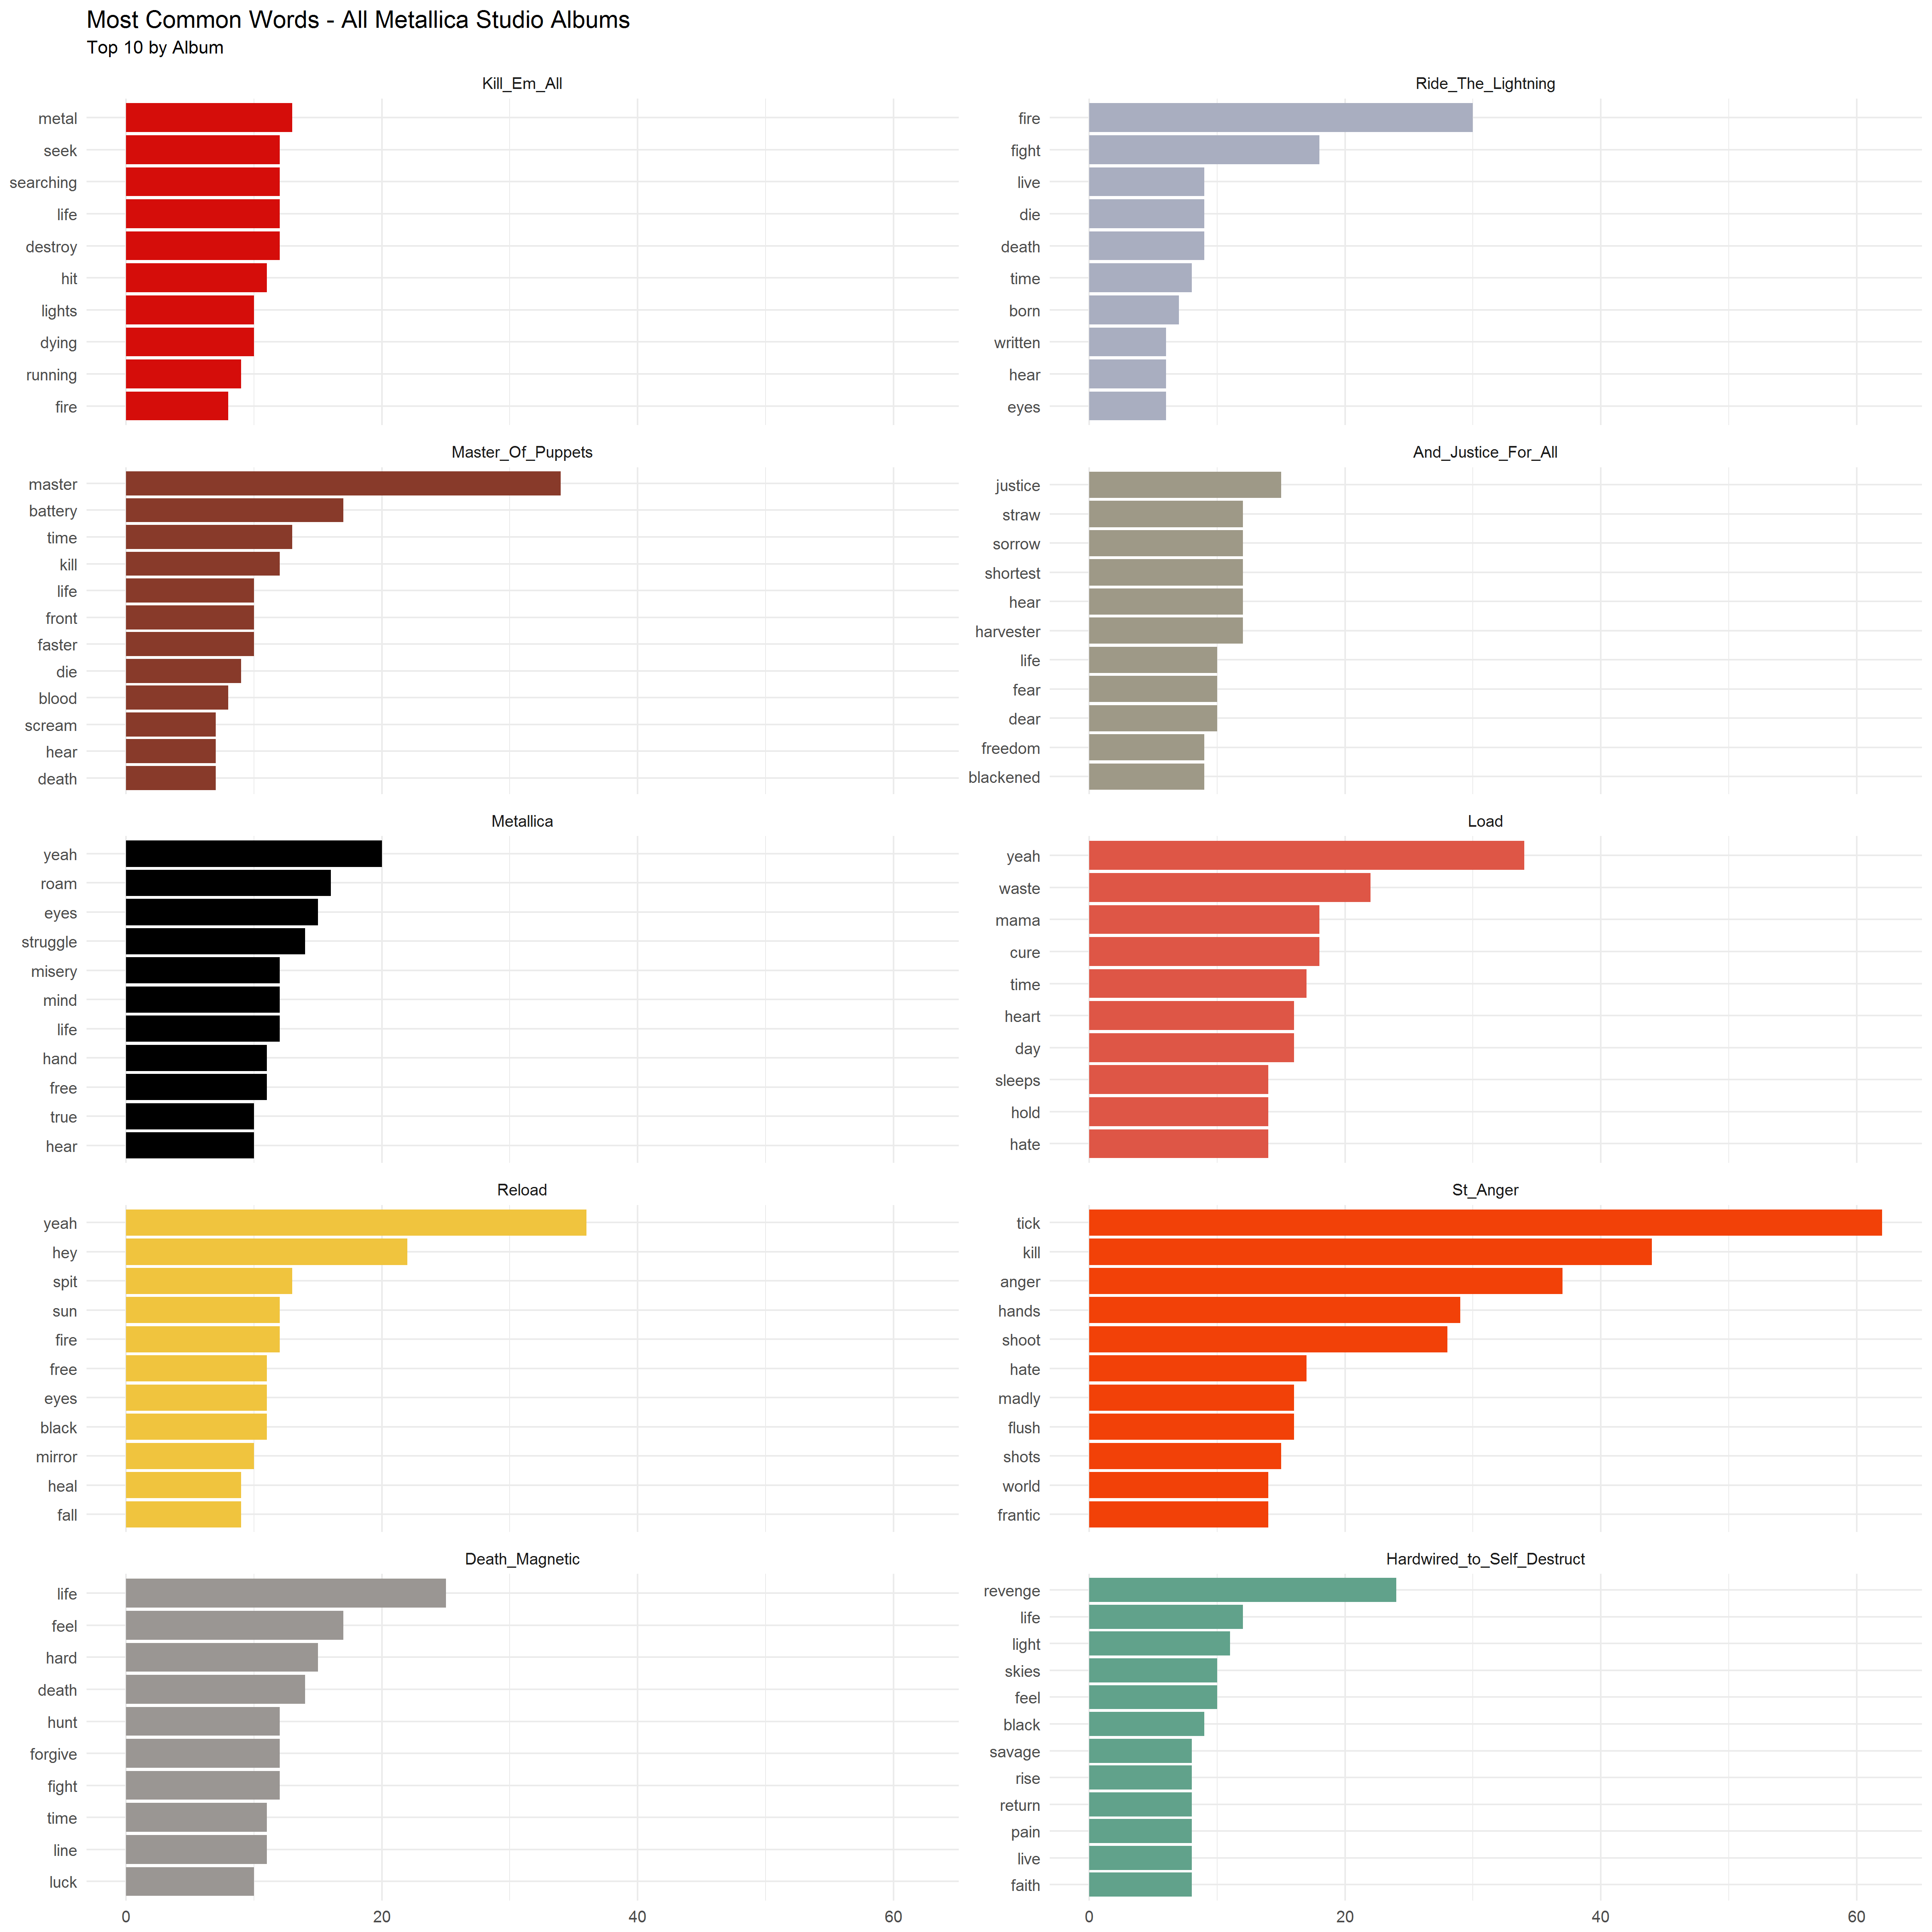 2018-01-28-Most-Common-Words-by-Album.png